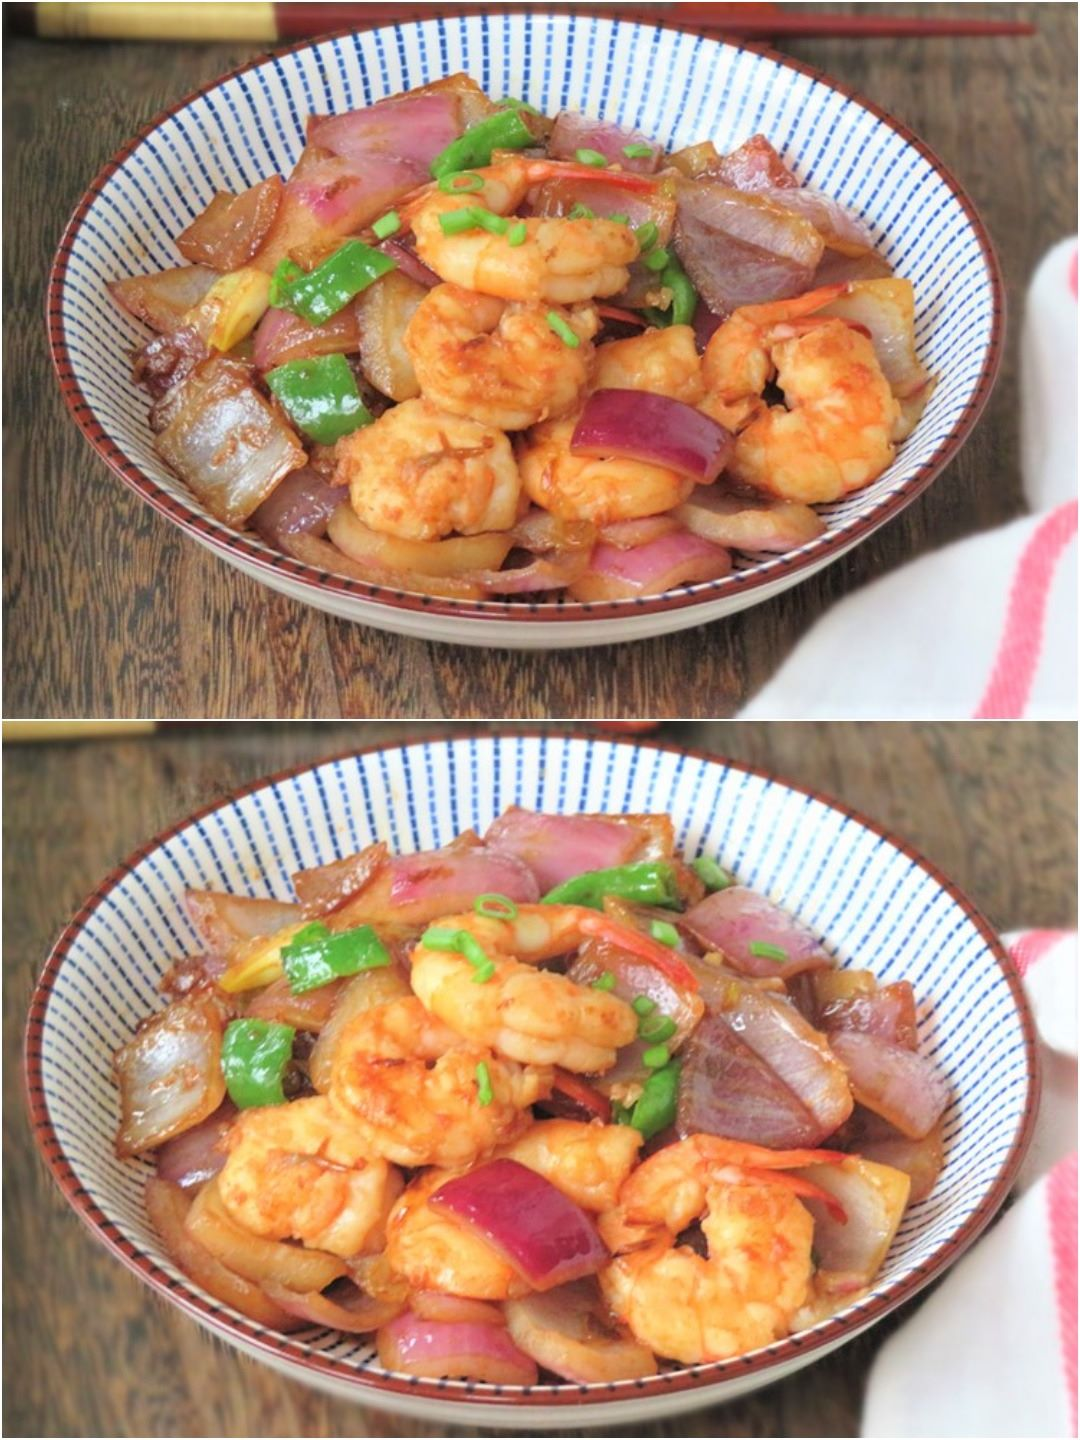 Fried shrimp with onion recipe healthy dish for elderly